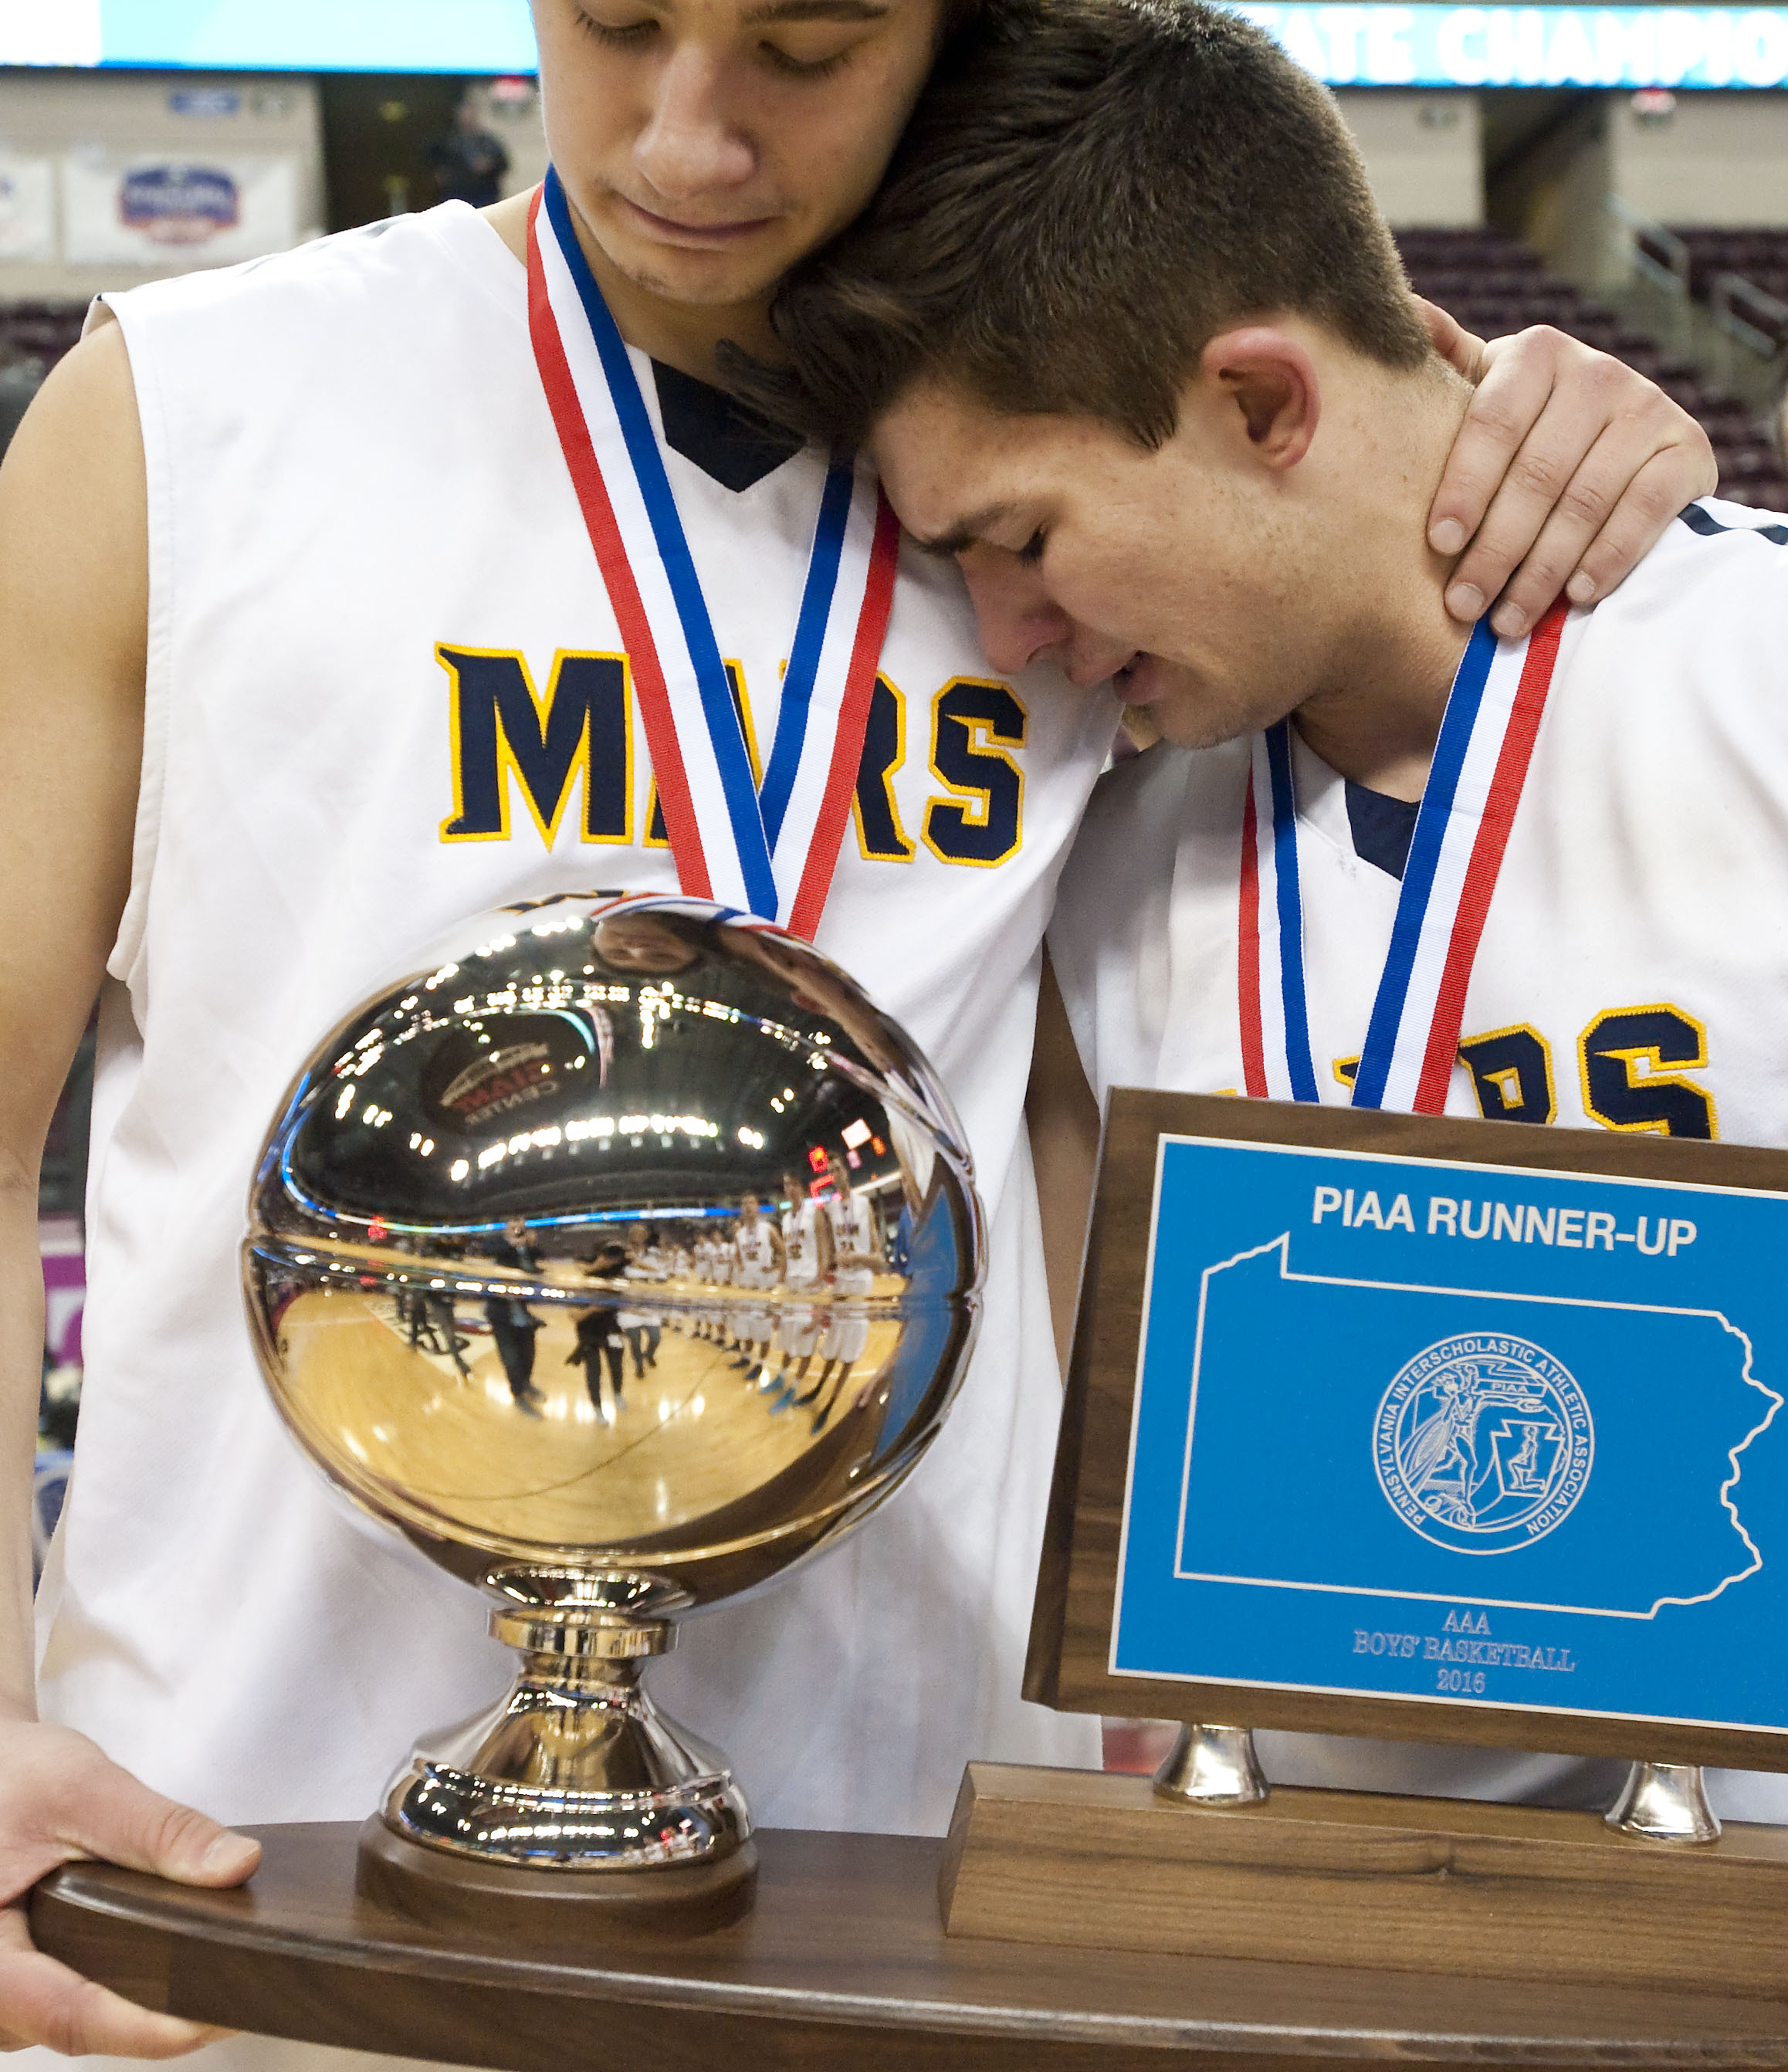 Mars Area's Christian Schmitt (23) rests on the shoulder of Mars Area's John Castello (3) with their runner-up trophy during the PIAA Class AAA boys basketball championship on Friday, March 18, 2016 at the Giant Center in Hershey, Pa. Neumann-Goretti won 99-66.